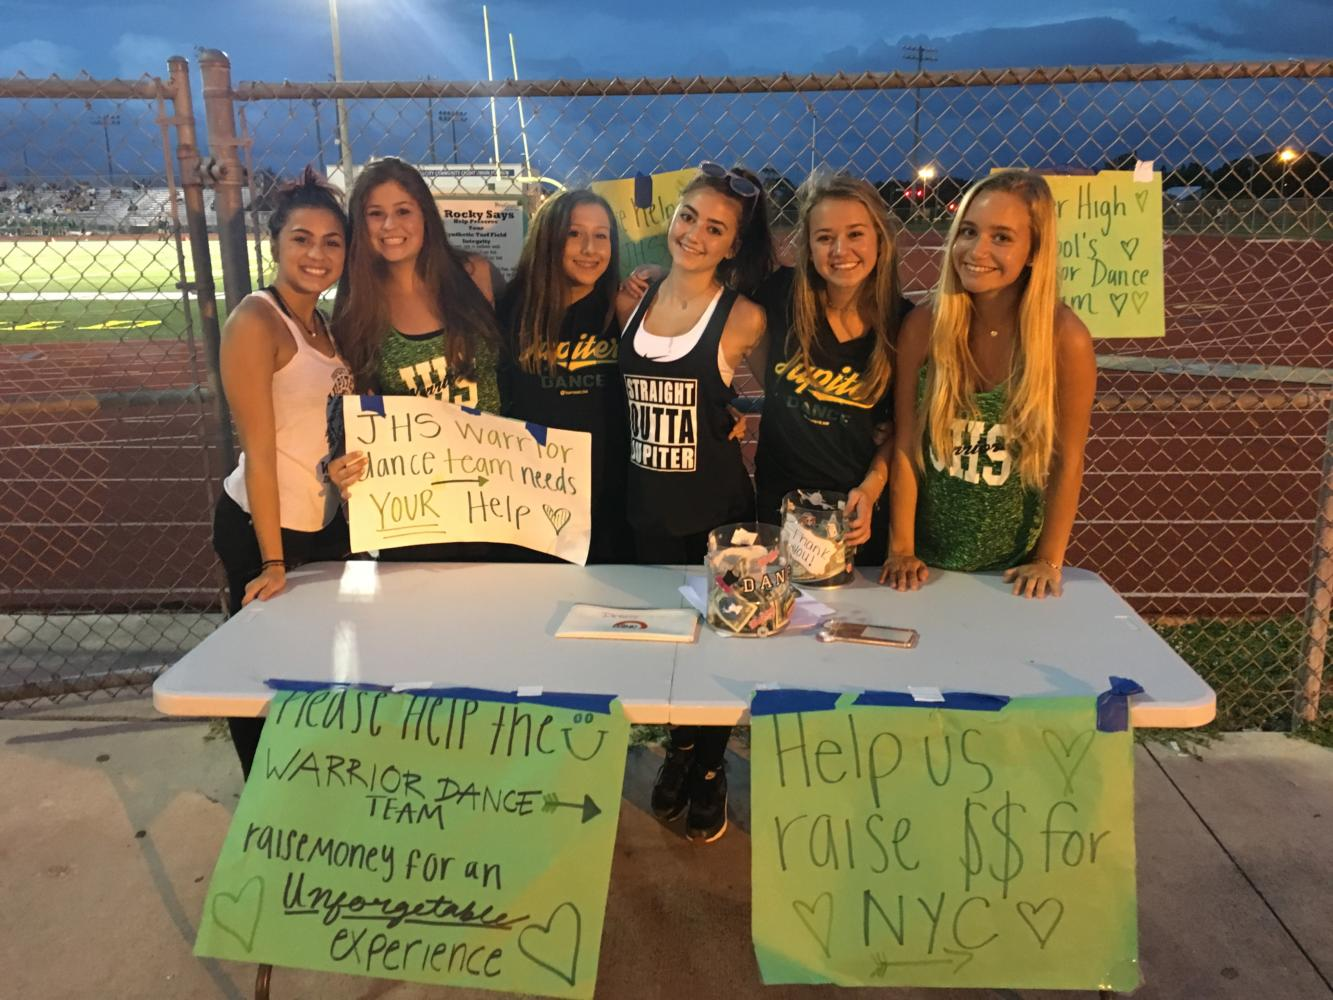 Dance team members help fundraise for their New York trip at a home football game September 1.